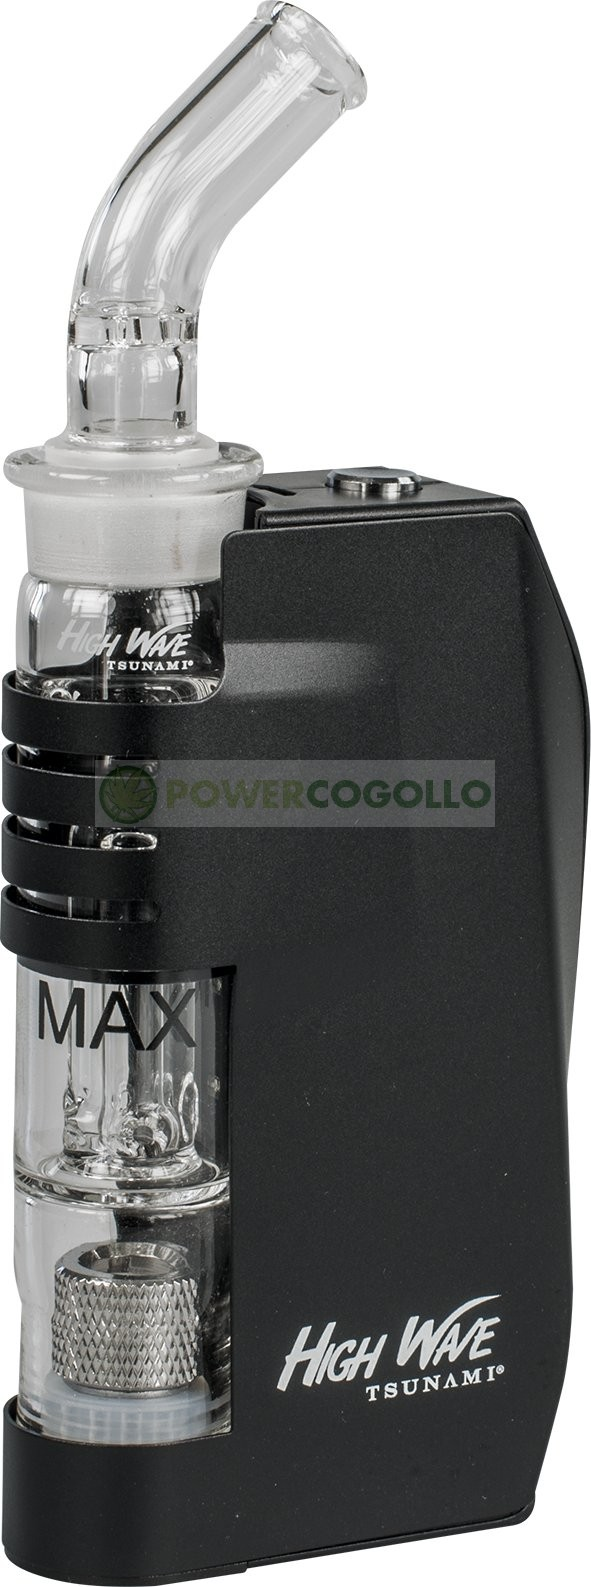 Vaporizador Tsunami High Wave Wax 1